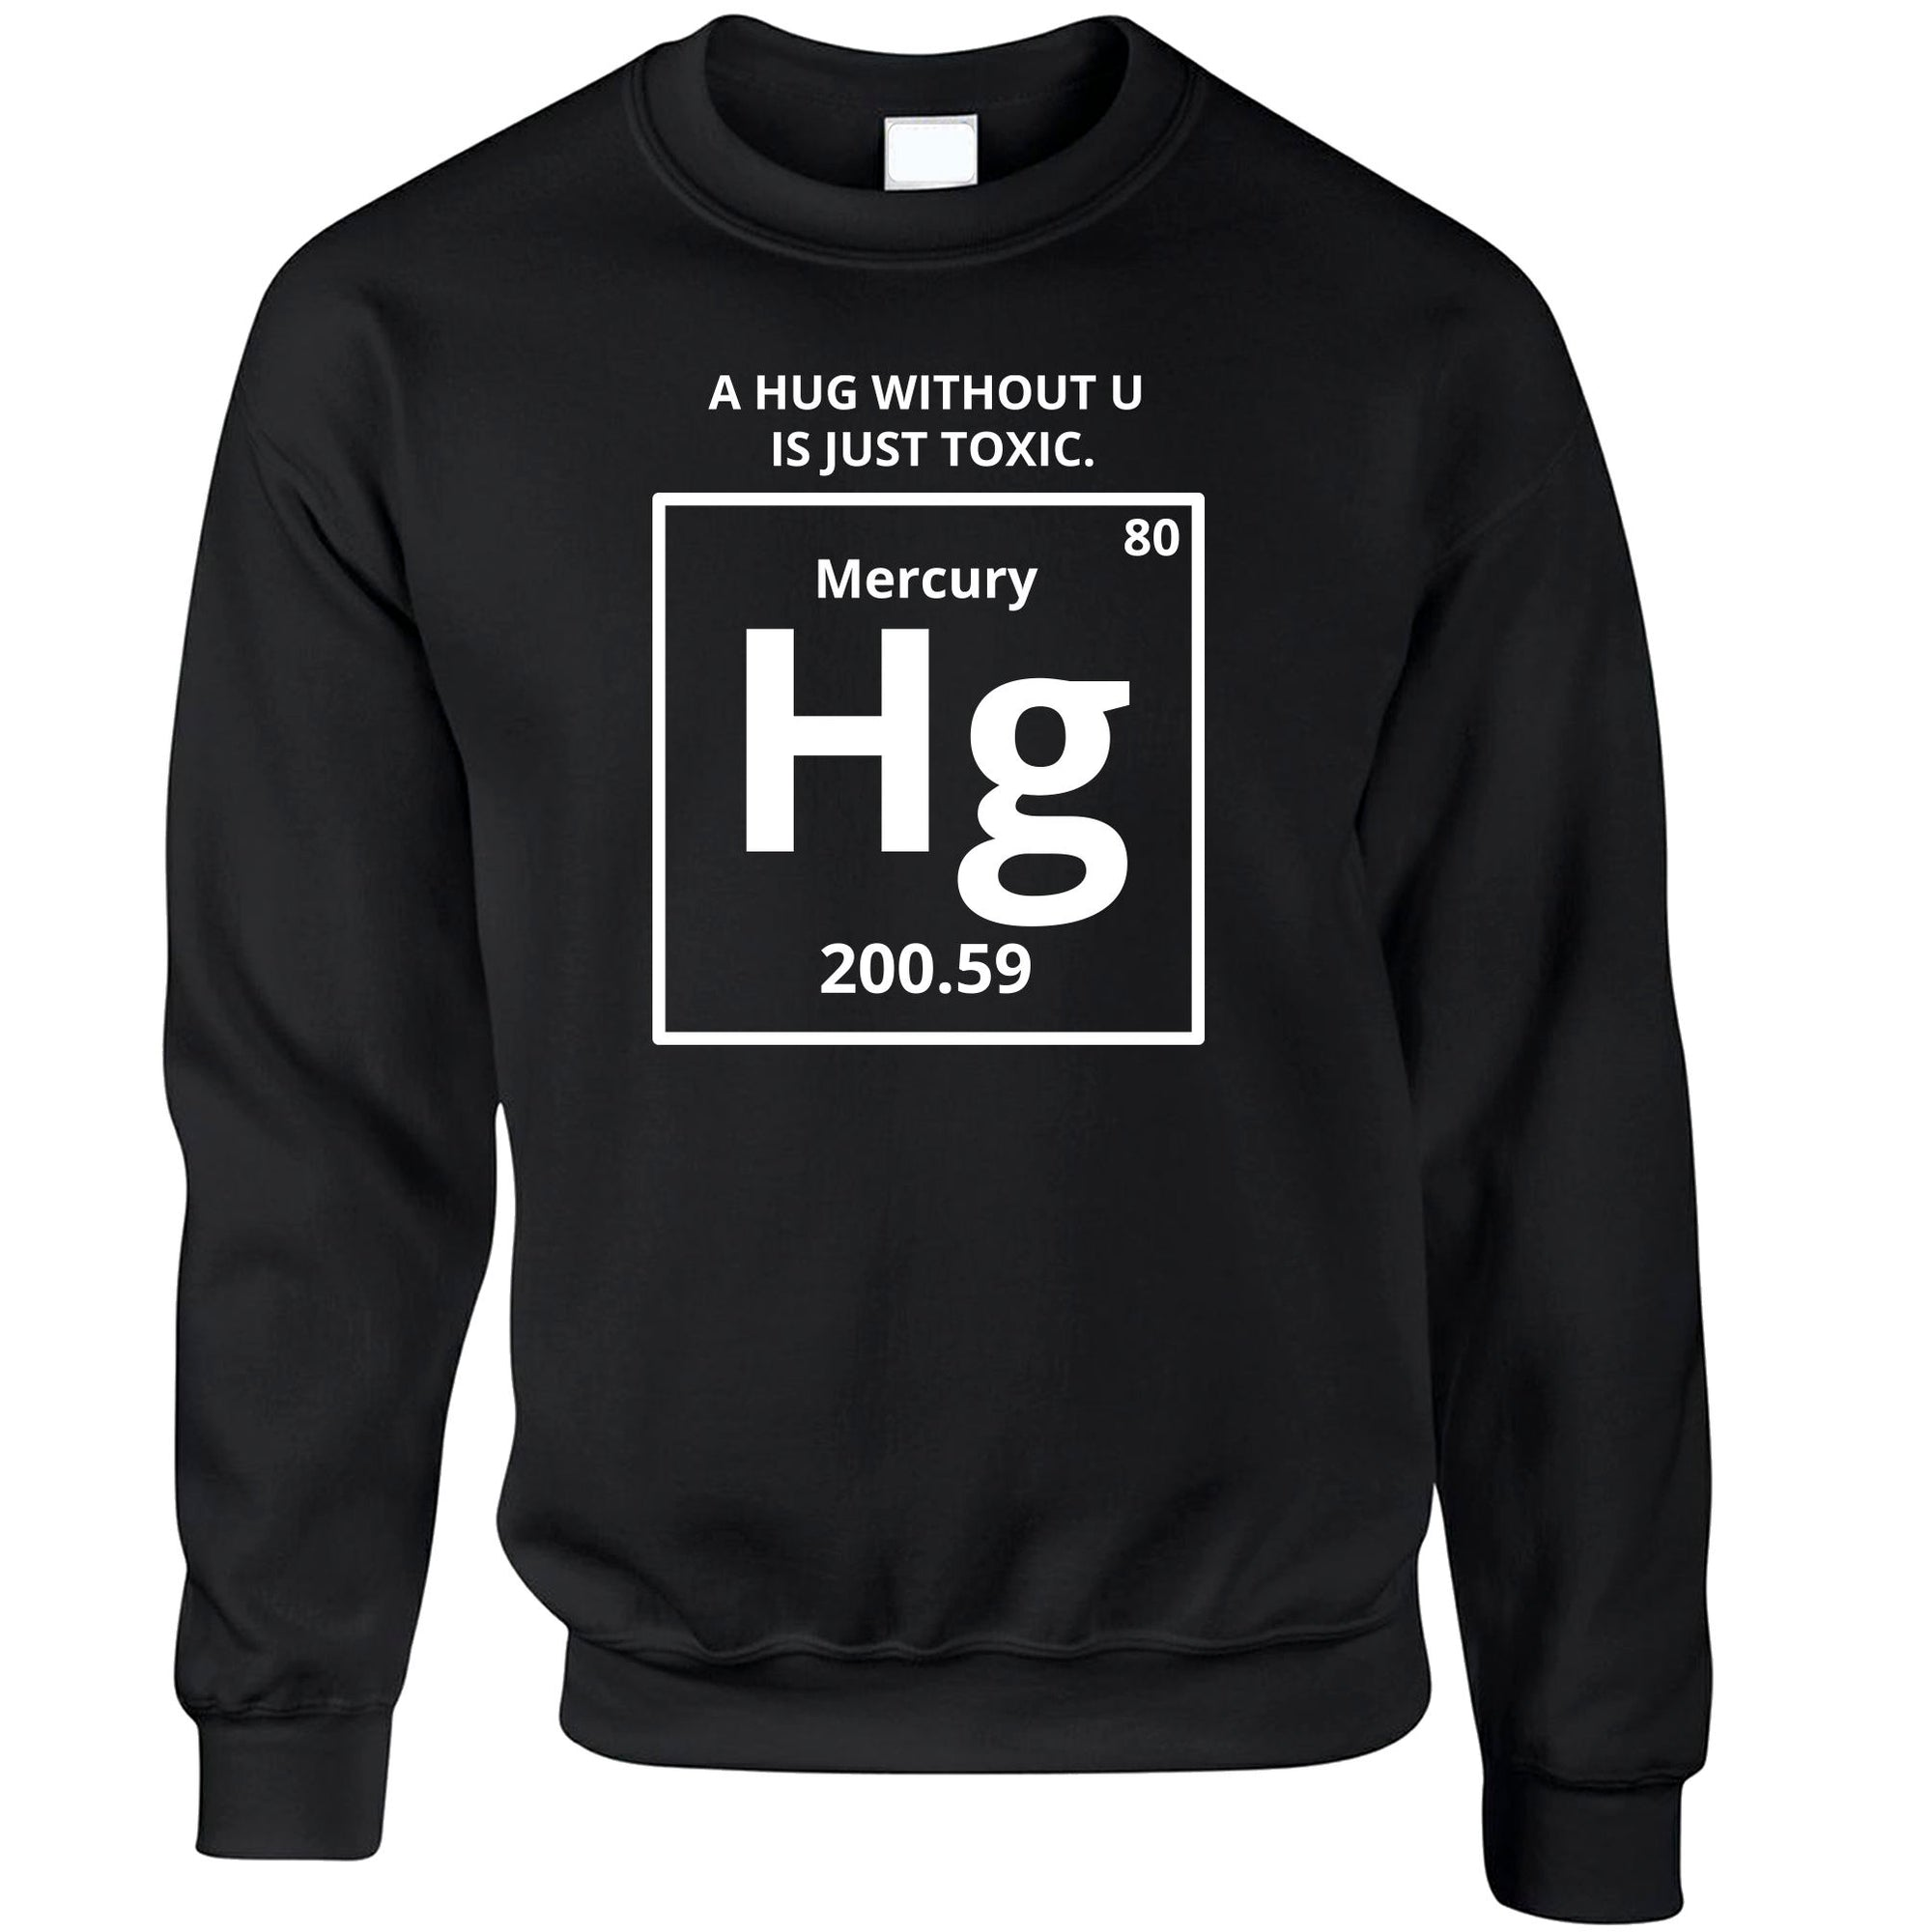 Funny Science Jumper Mercury Hug Chemistry Joke Sweatshirt Sweater